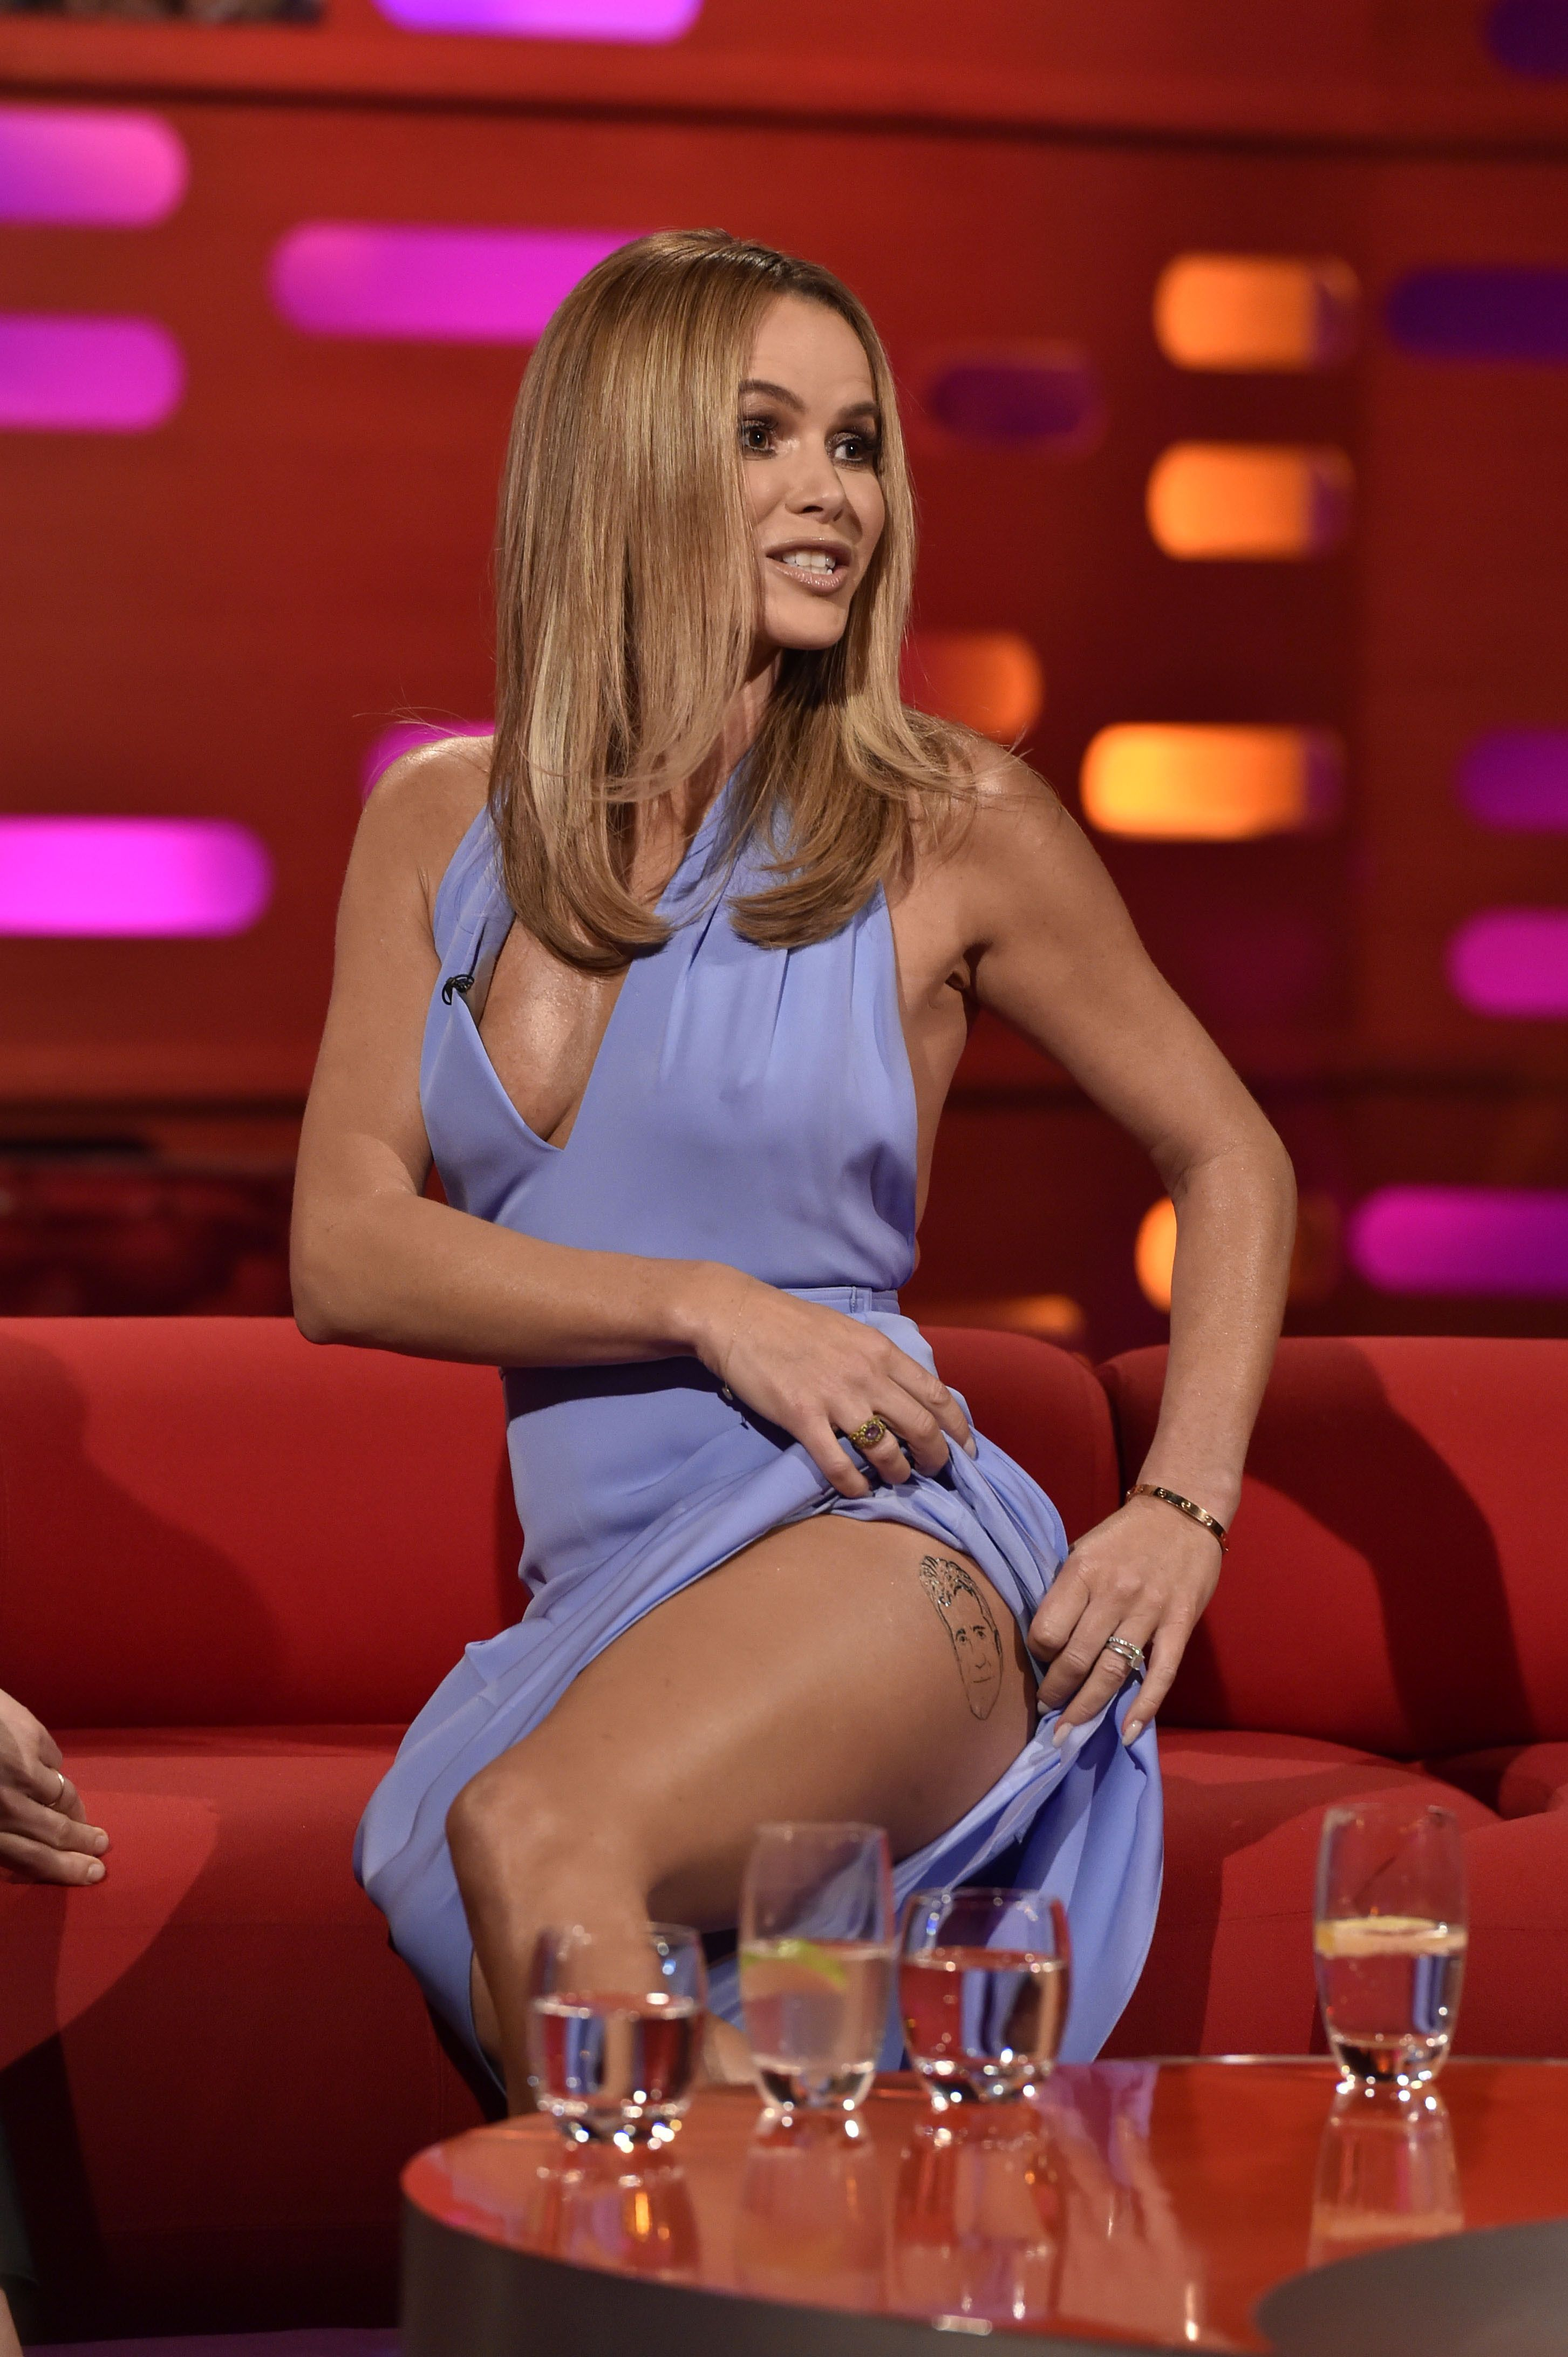 Amanda Holden Tits 49 hot pictures of amanda holden are too damn appealing